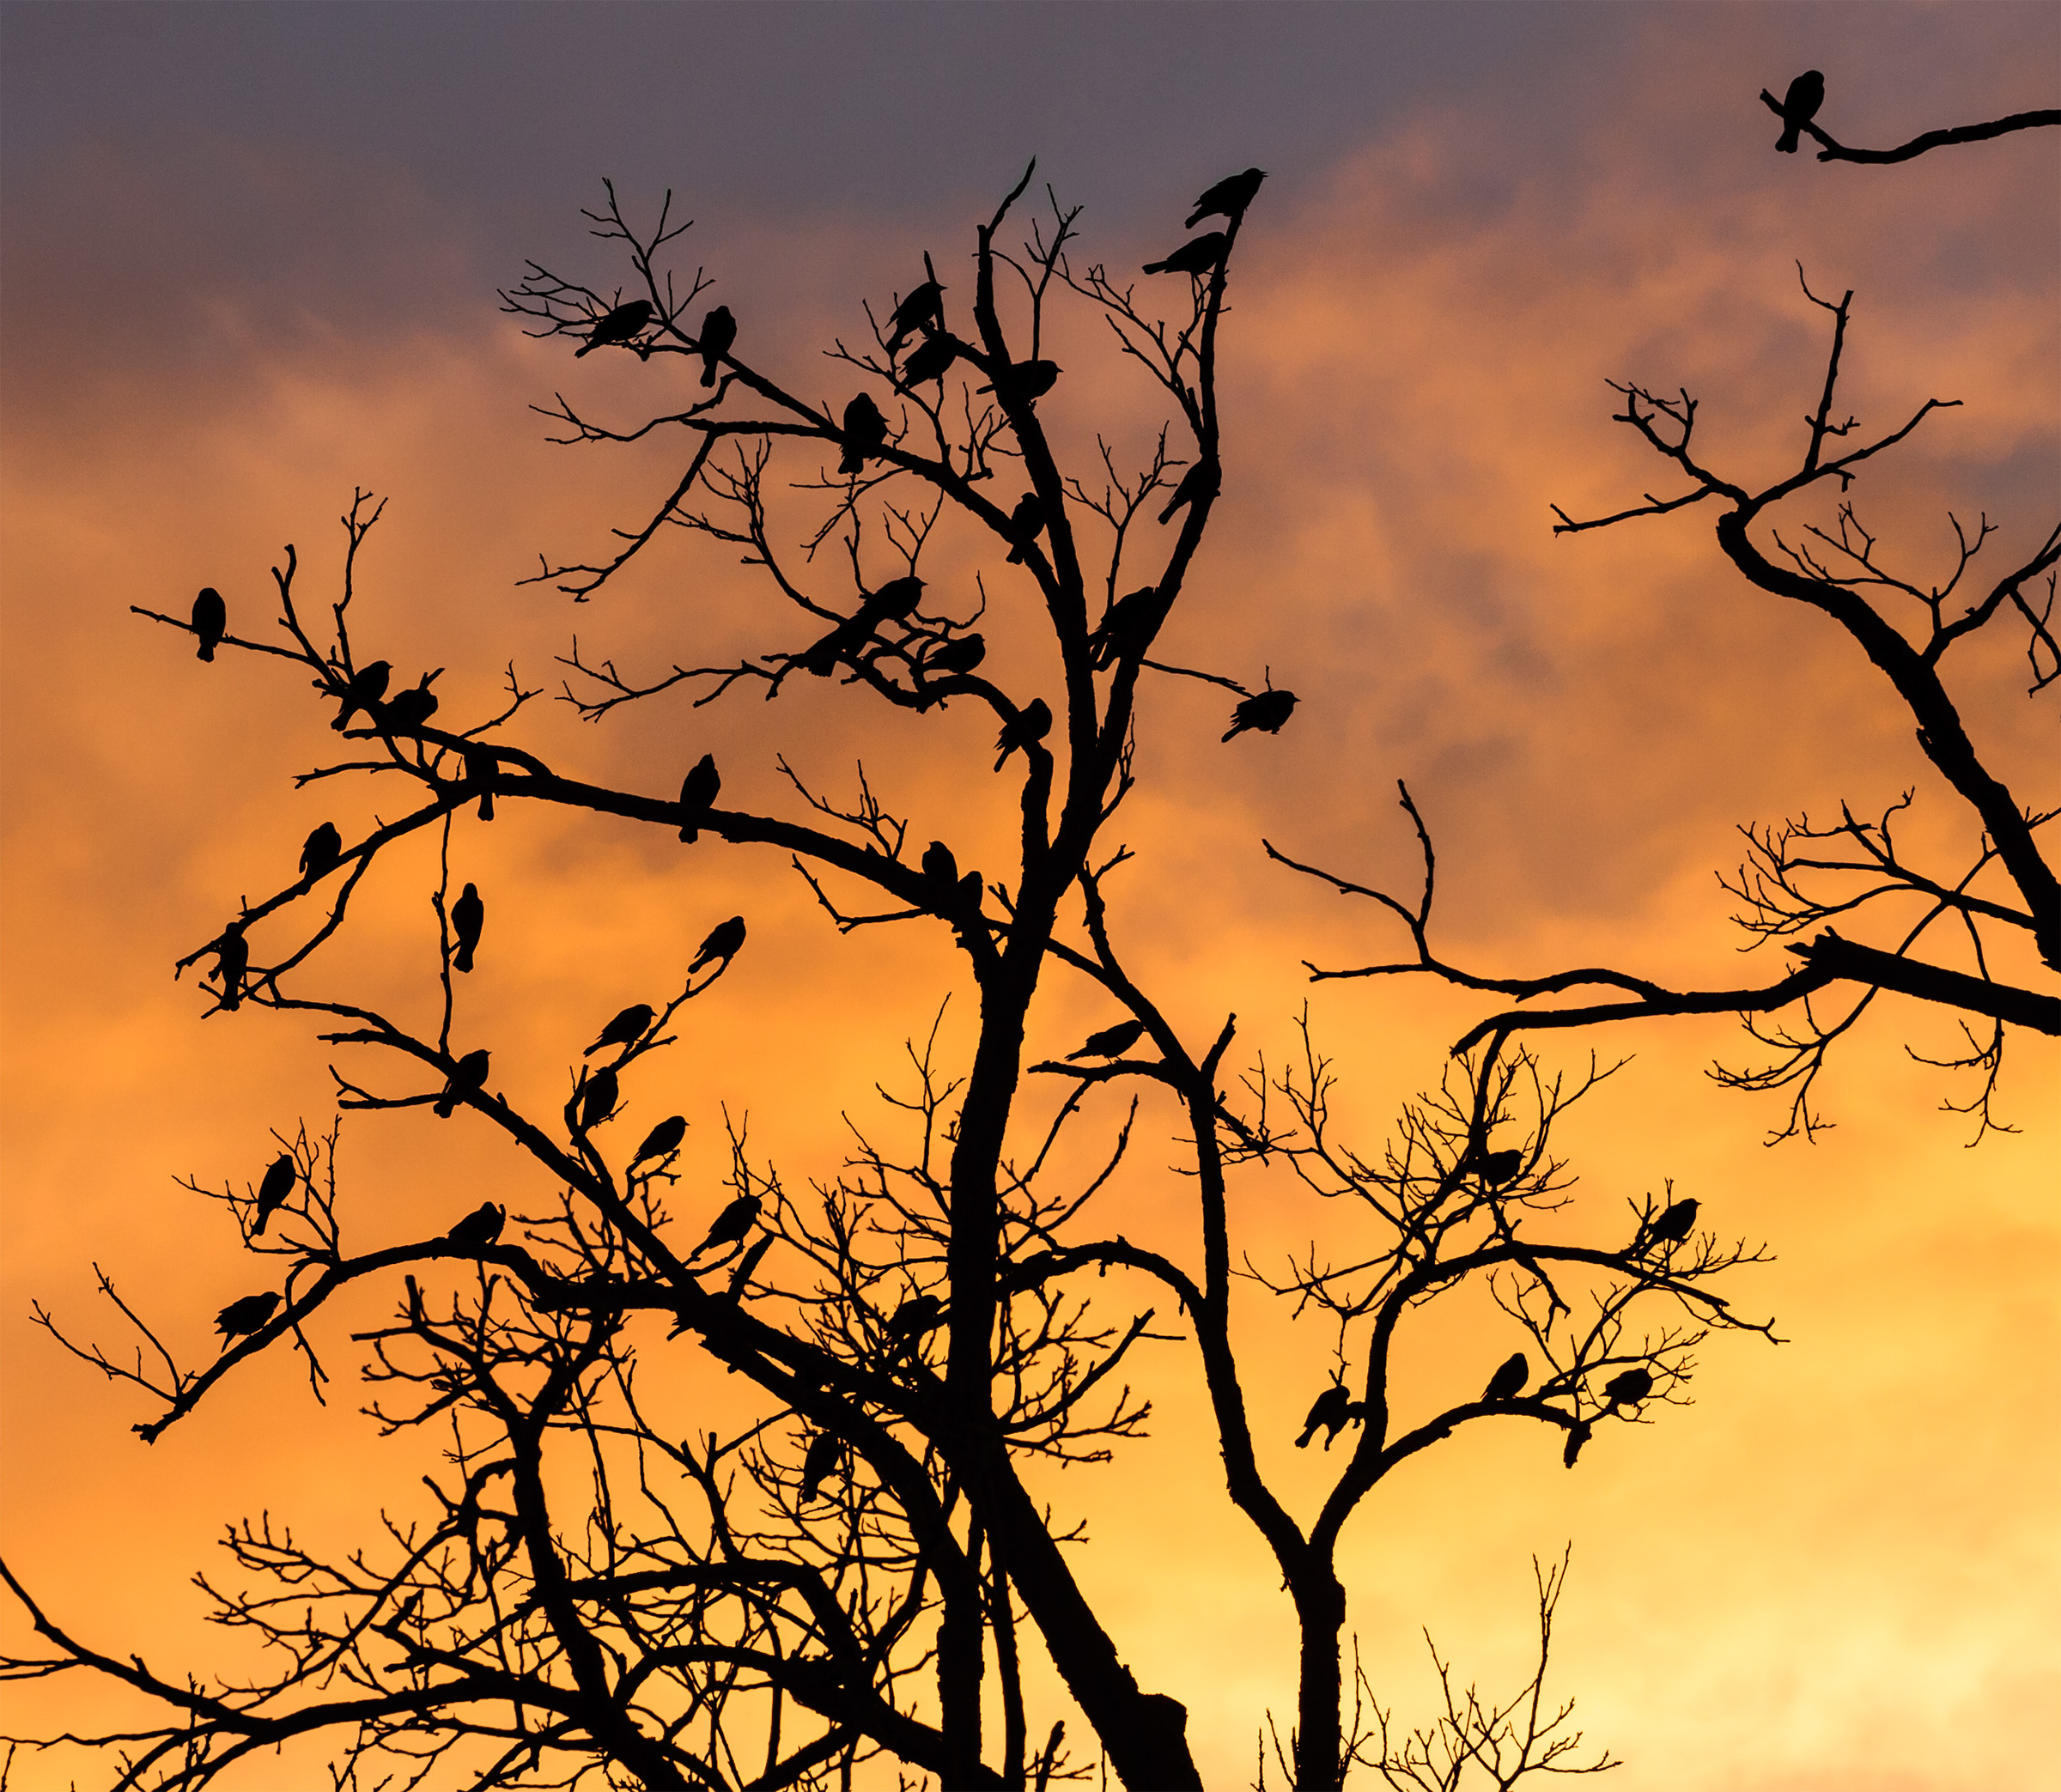 File:Silhouetted birds in a tree (7515037378).jpg - Wikimedia Commons